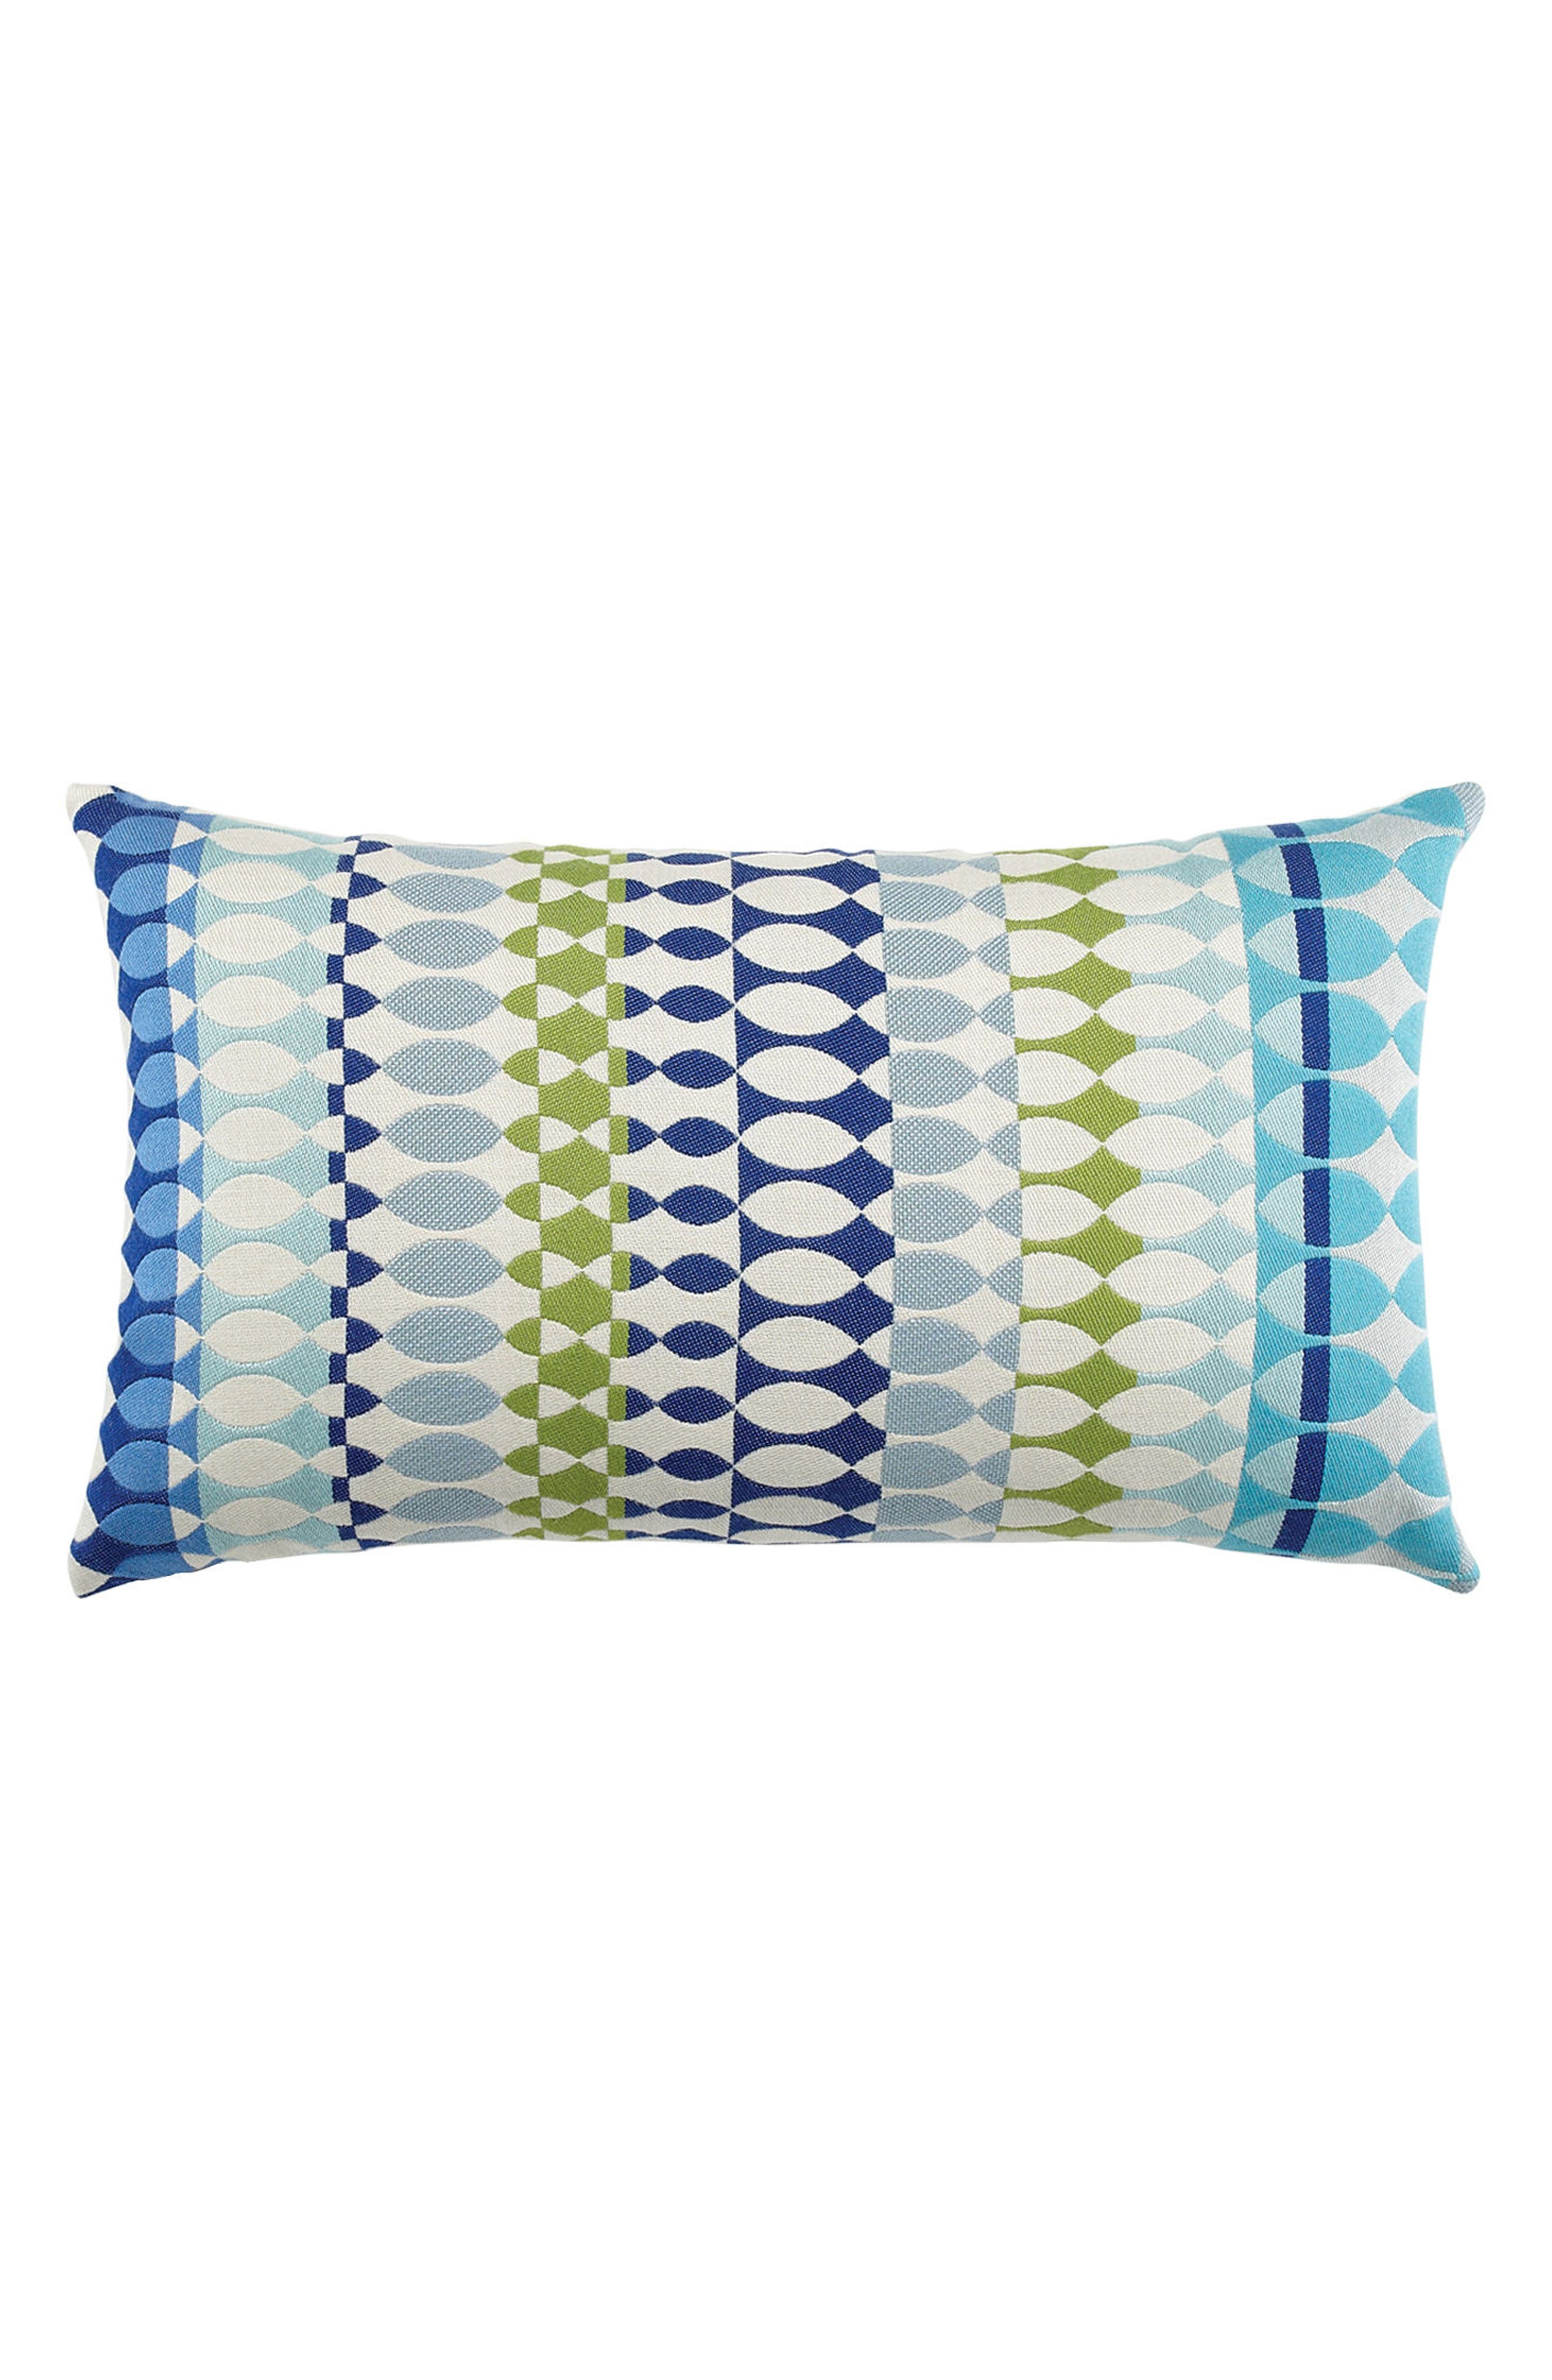 Modern Oval Ocean Lumbar Pillow,                             Main thumbnail 1, color,                             Blue Multi